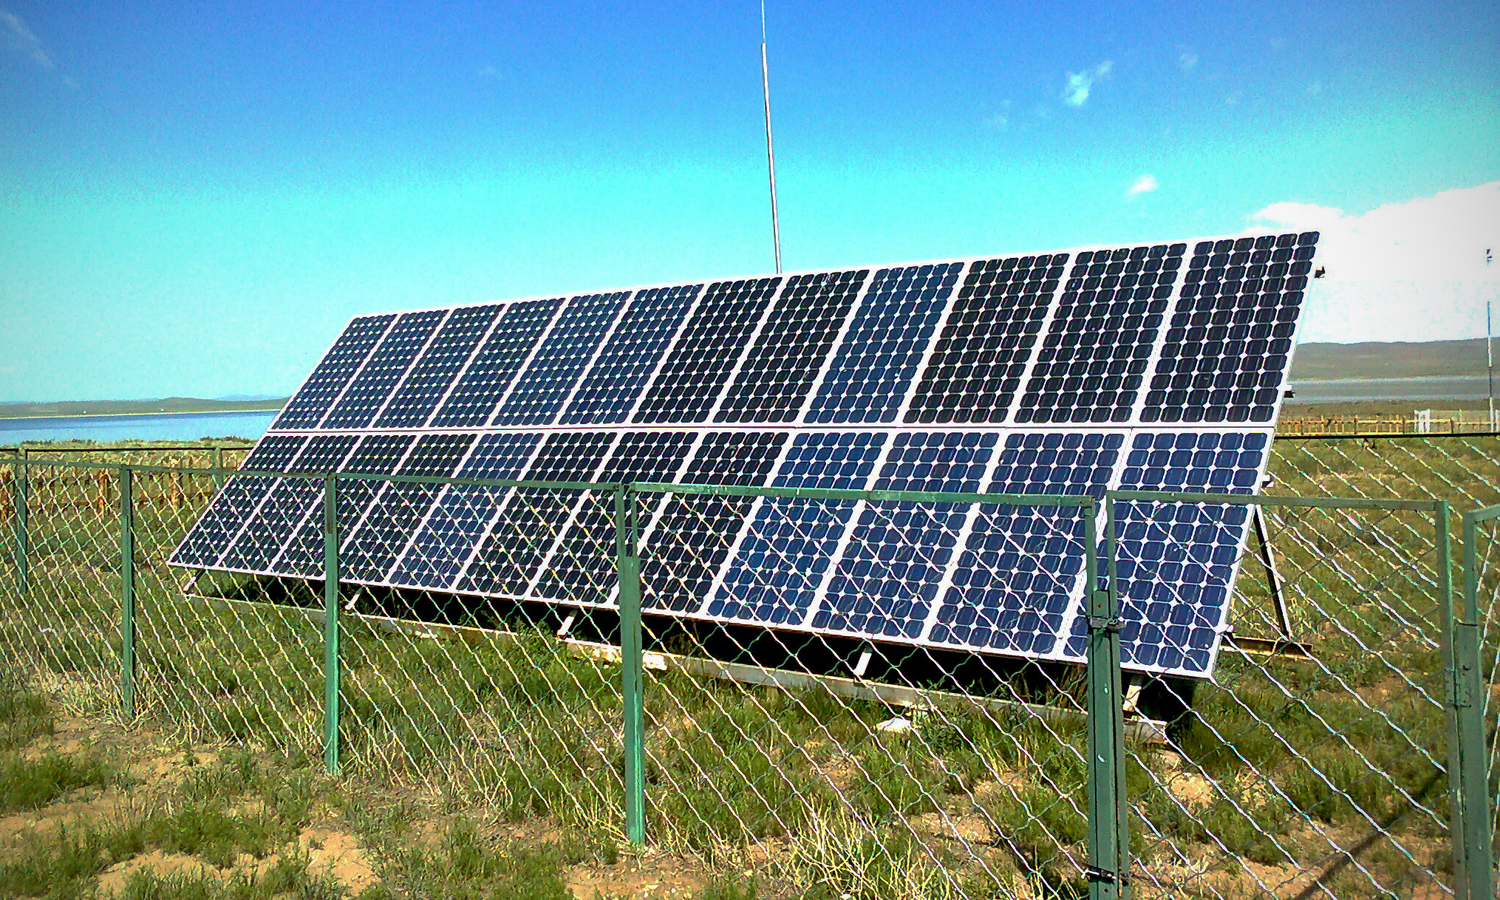 Solar panel installation at an information center adjacent to Ögii Lake